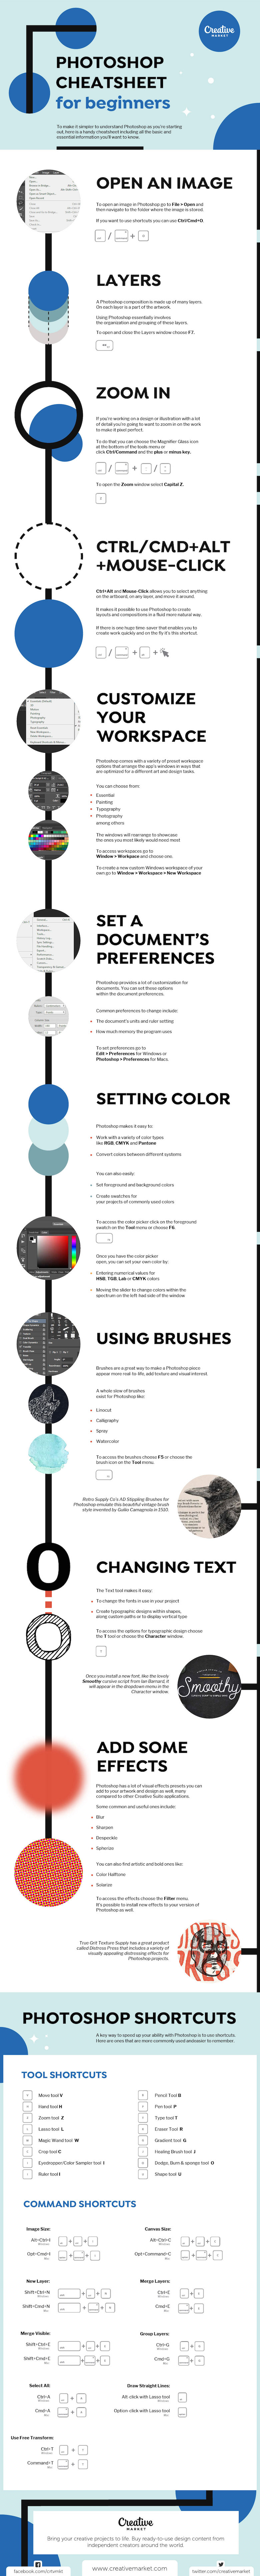 Adobe Photoshop Shortcuts, Tips, Tutorial For Beginners - Cheat Sheet Guide